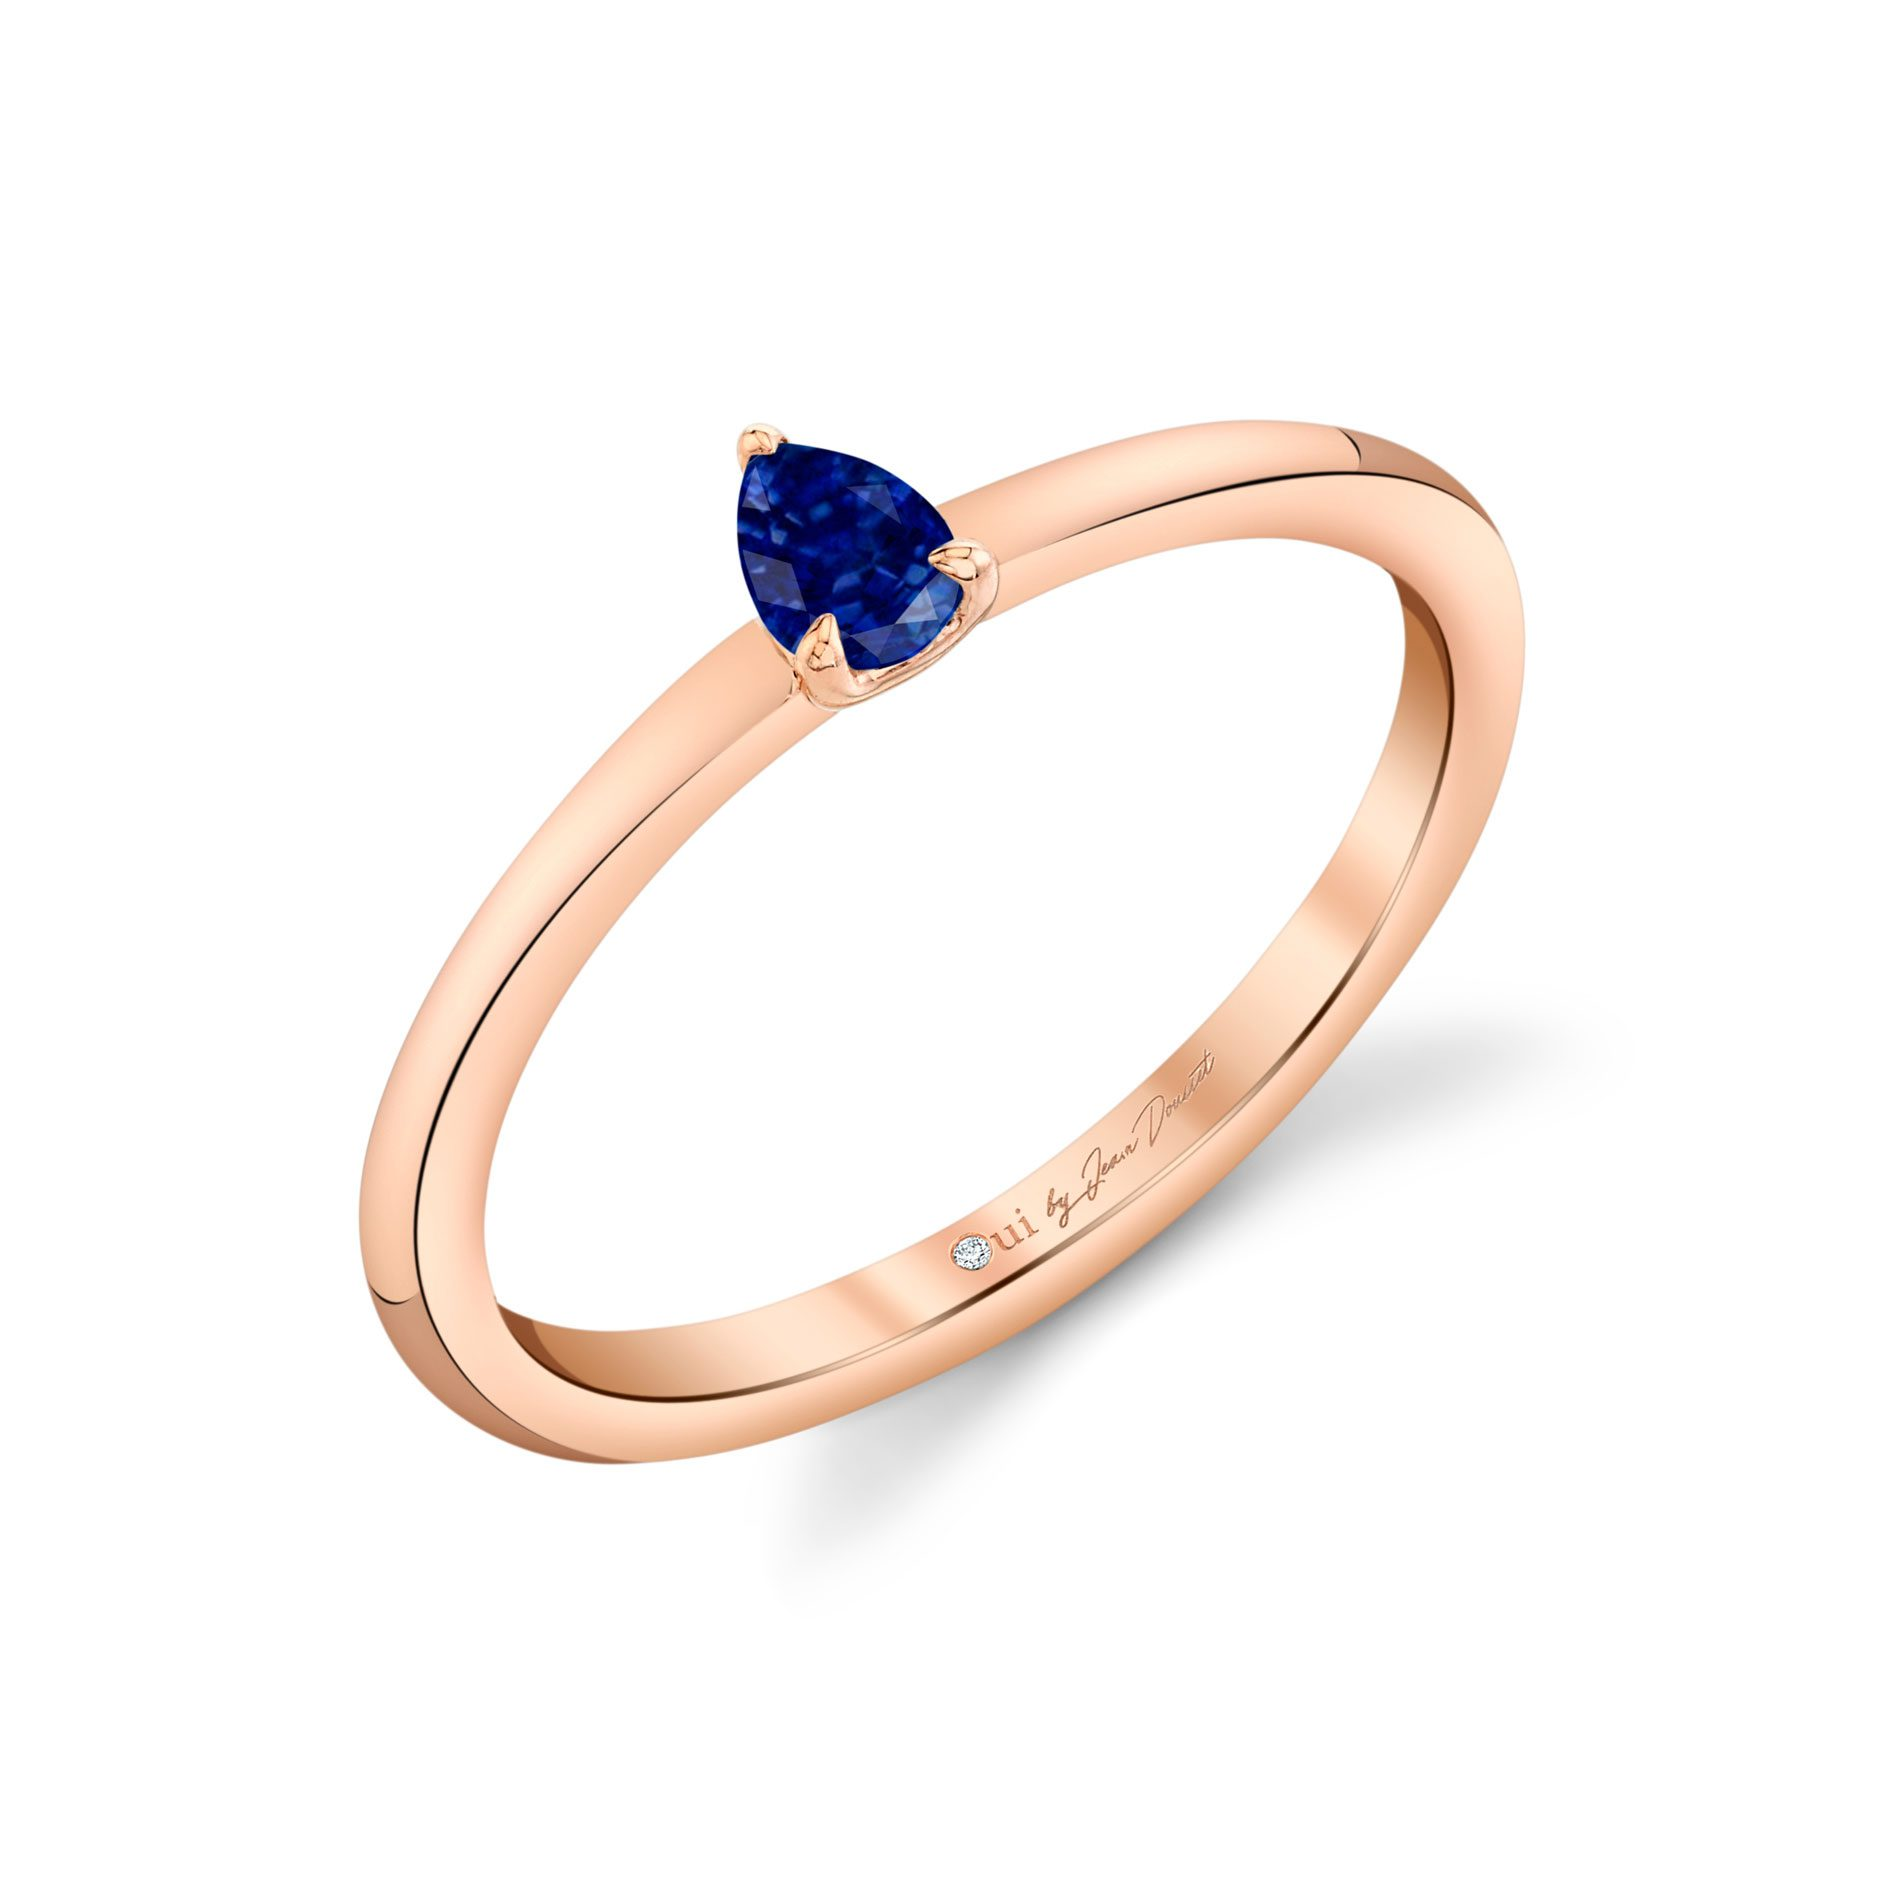 La Petite Pear Blue Sapphire Ring in 18k Rose Gold Profile View by Oui by Jean Dousset